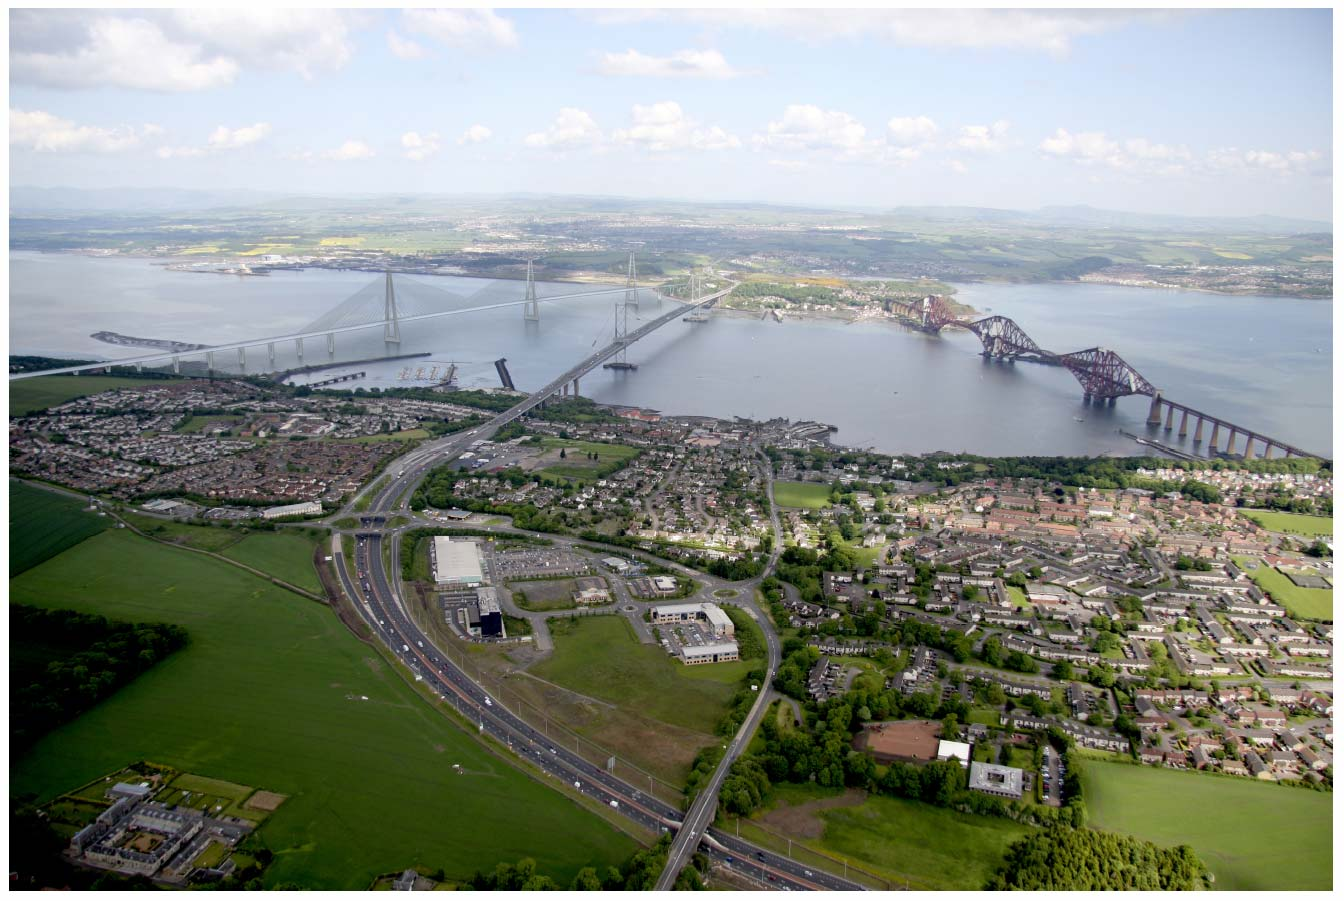 H-Shape Tower viewed from above South Queensferry